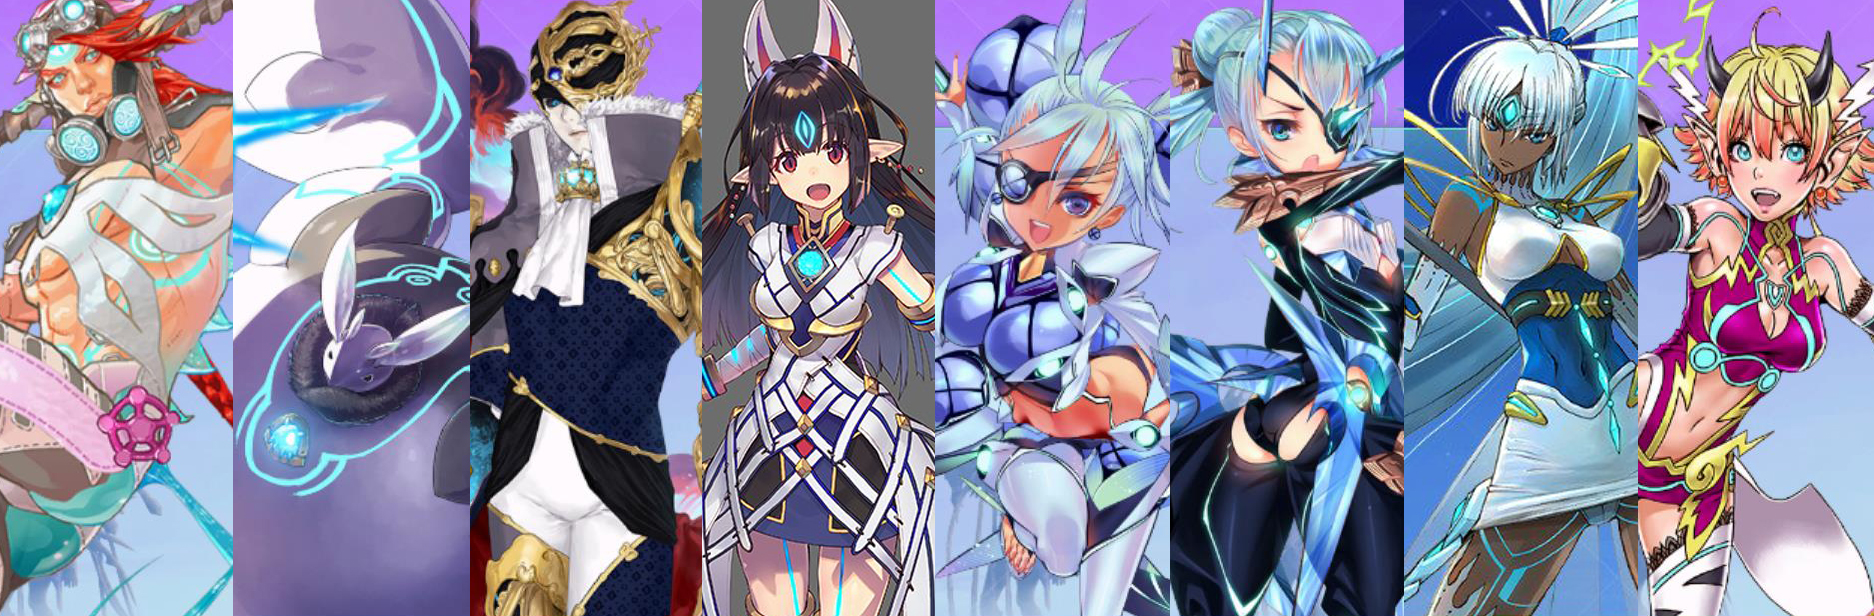 Xenoblade Chronicles 2 Rare Blades Guide Elements Roles Field